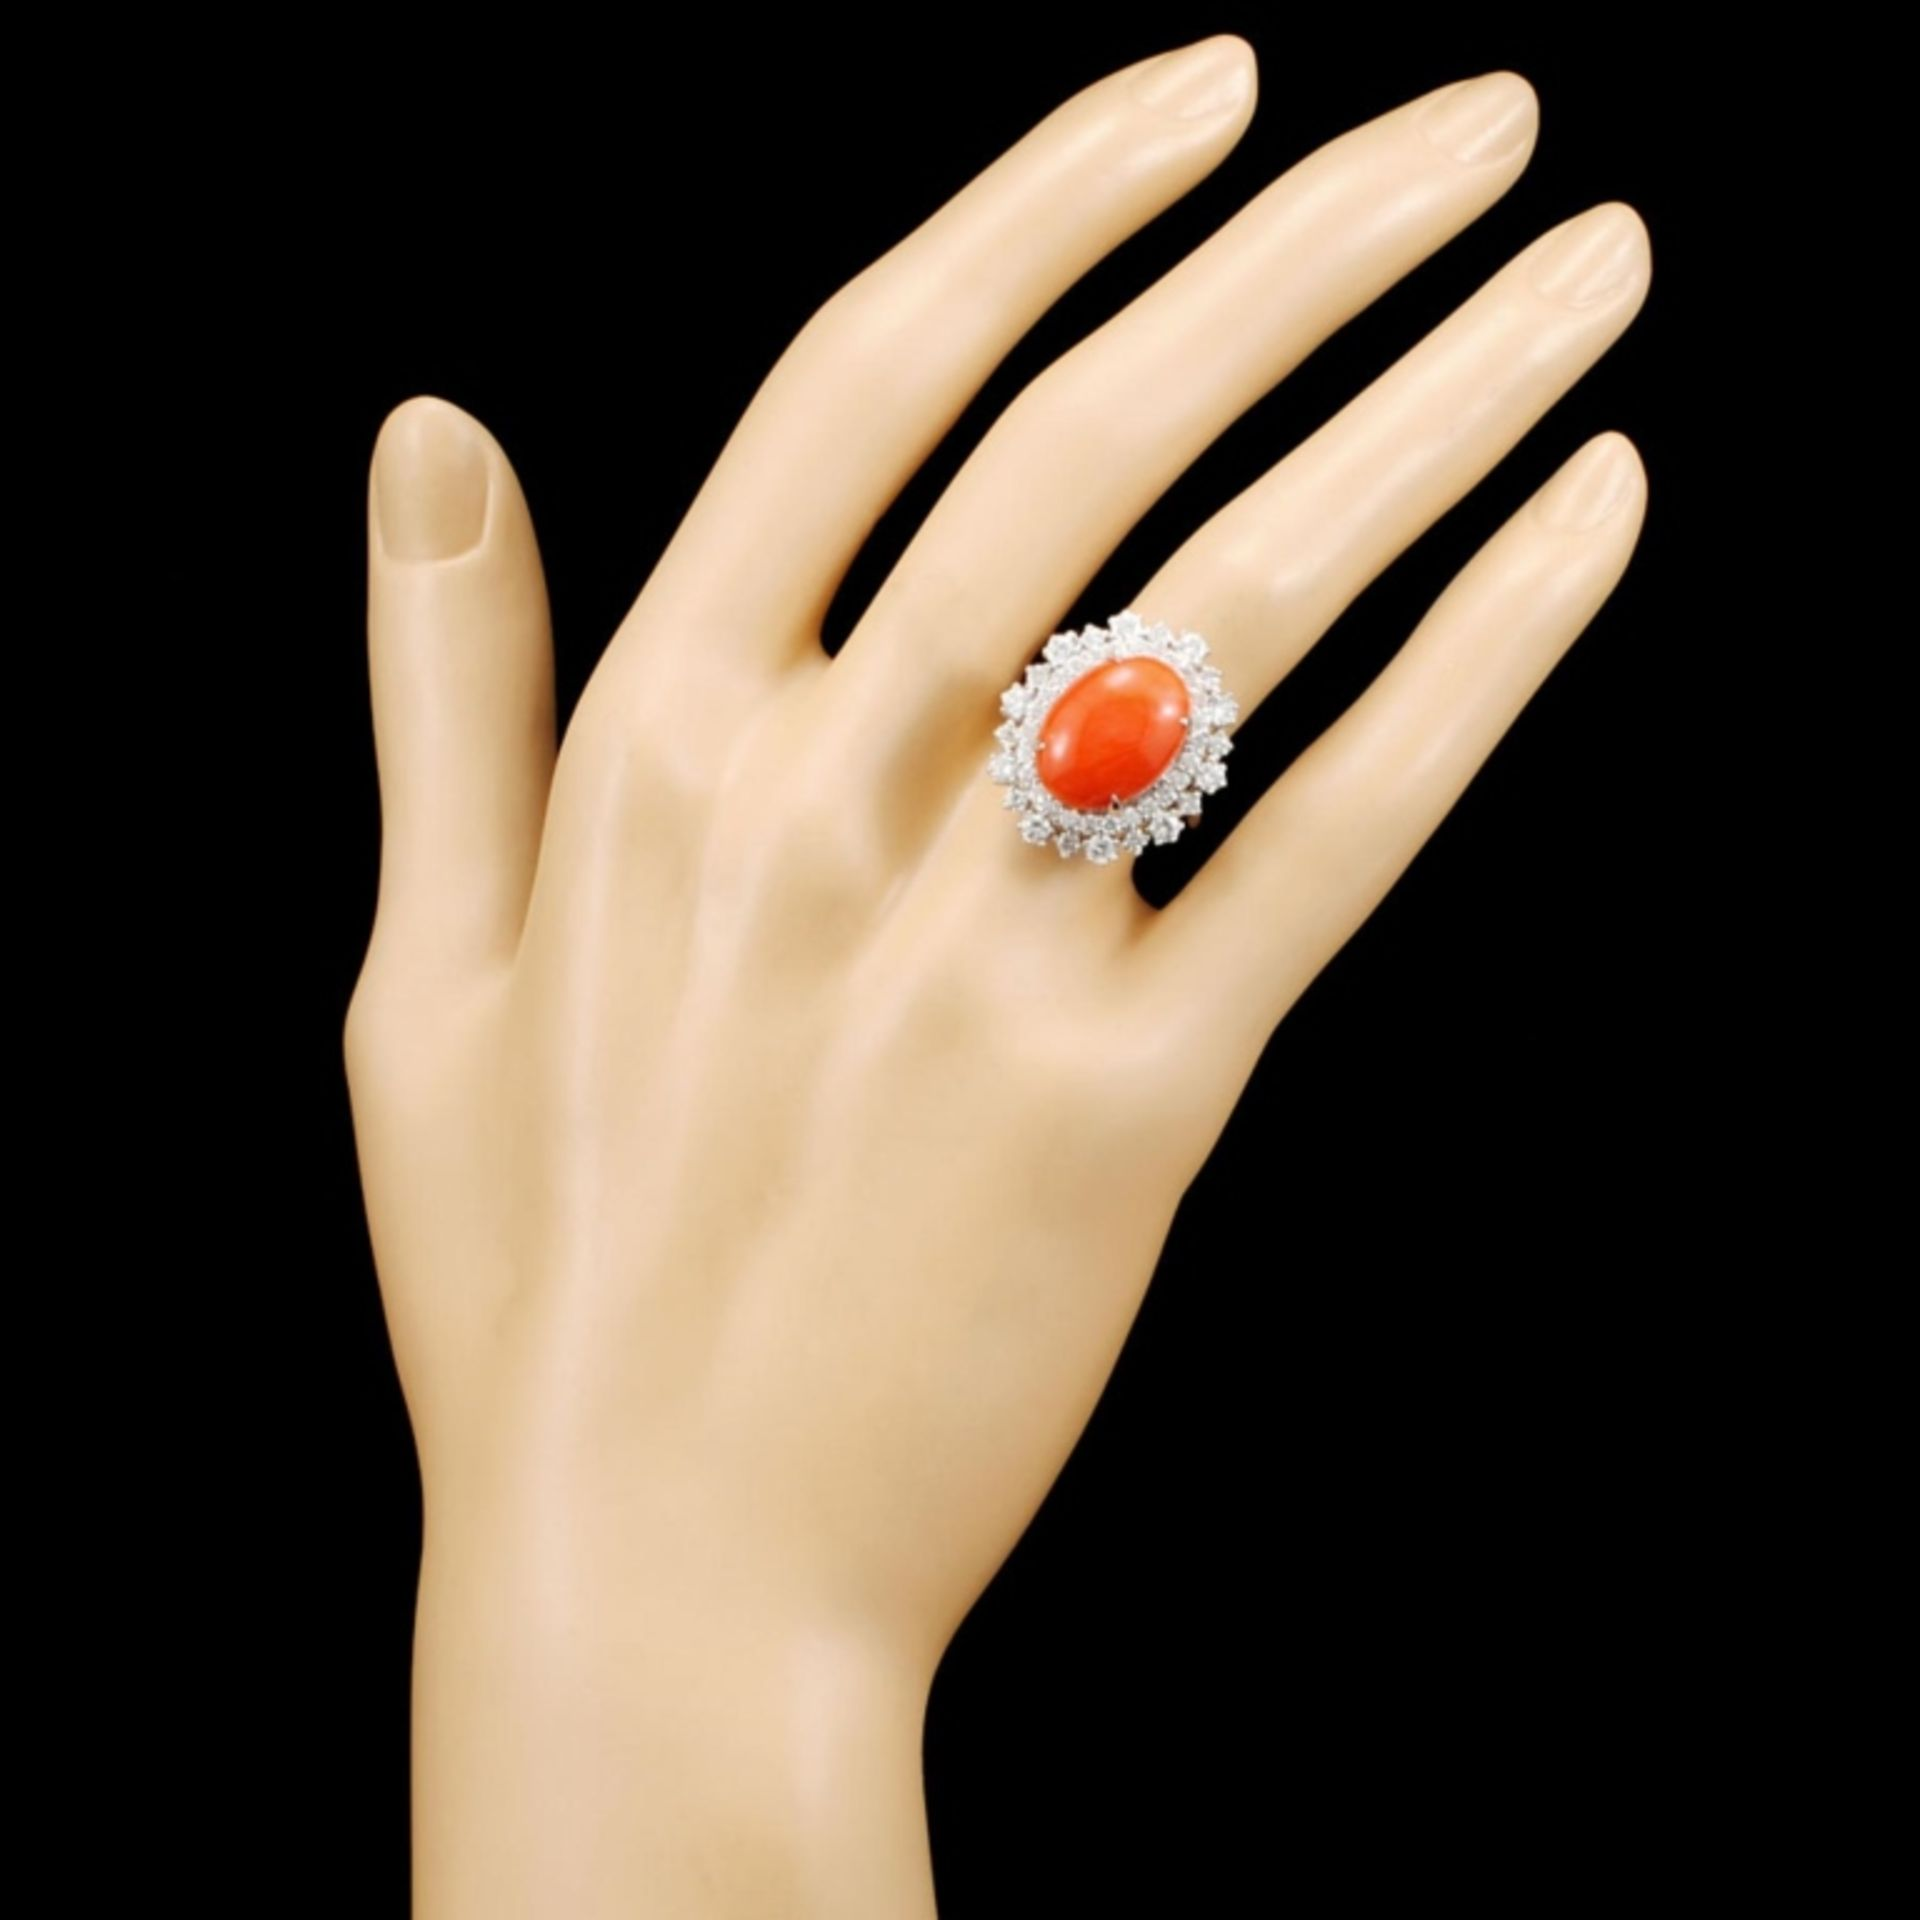 14K Gold 5.47ct Coral & 1.82ctw Diamond Ring - Image 4 of 5